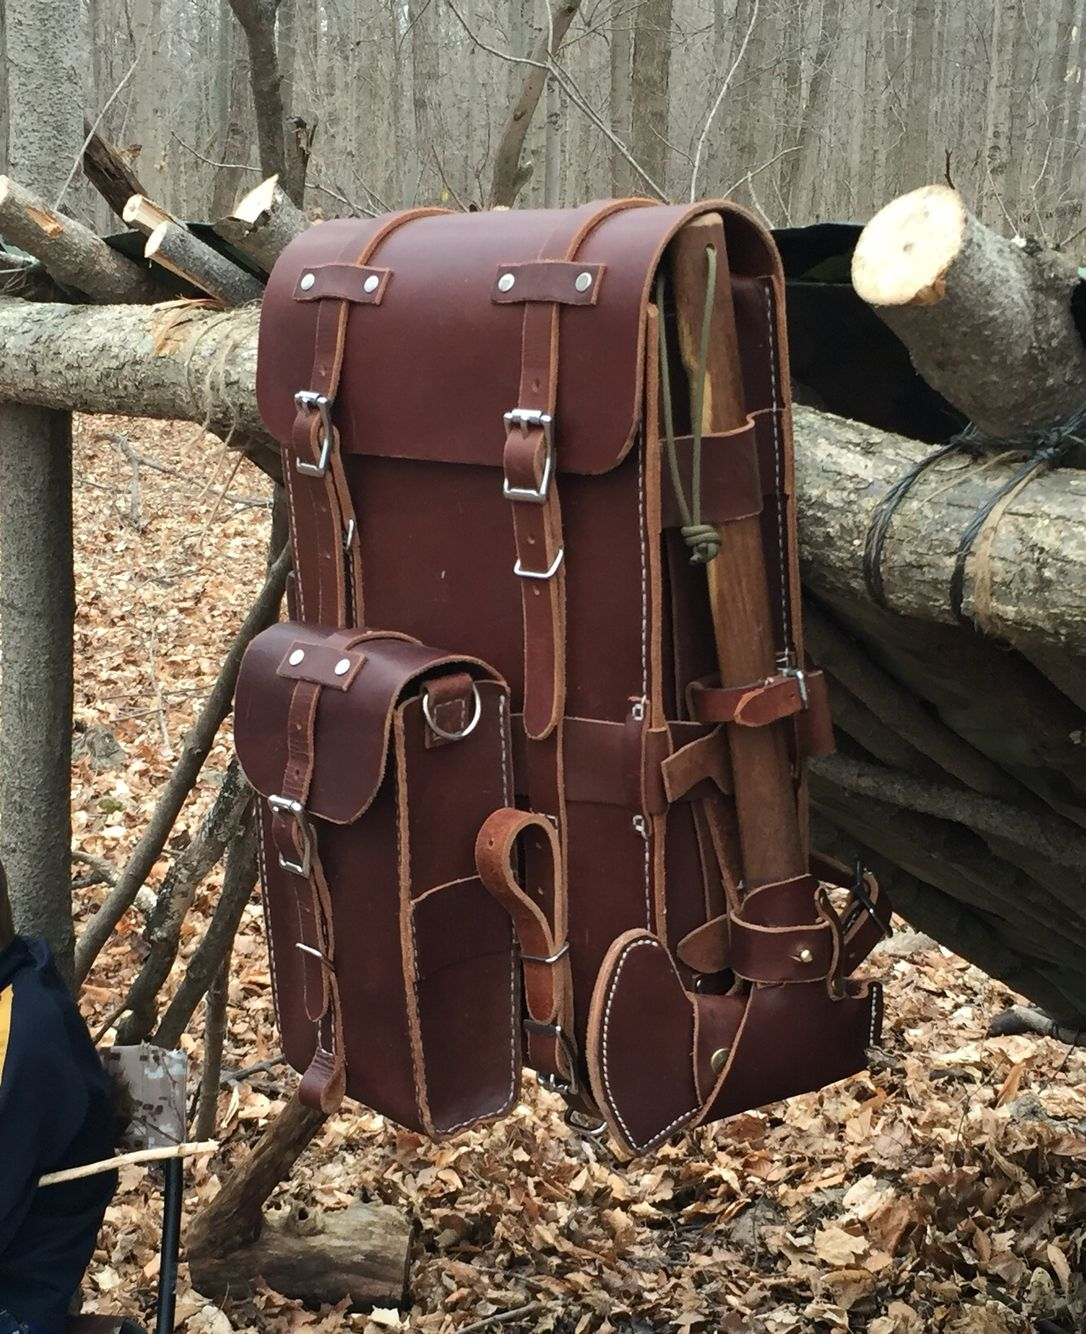 Leather bushcraft day pack with detachable belt system for pouches and camp  axe holder. All hand sewn in 9-10oz Latigo (front and back) and 6-7oz  Latigo ... db399a74b3a